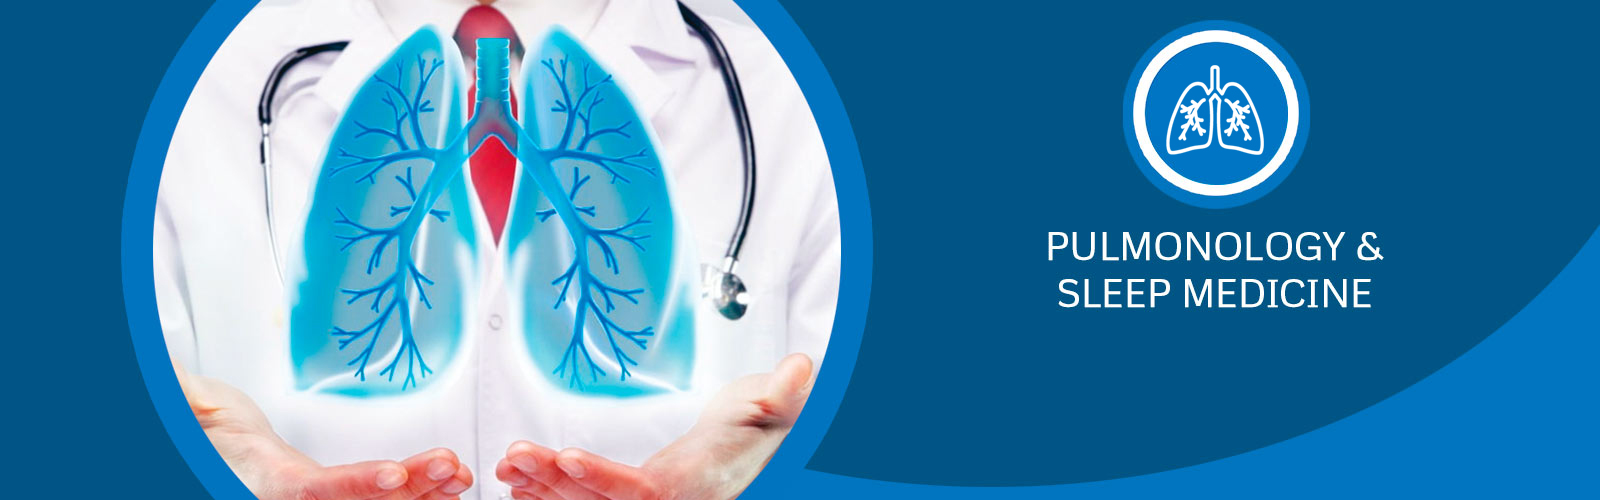 pulmonology- Venkateshwar Hospital